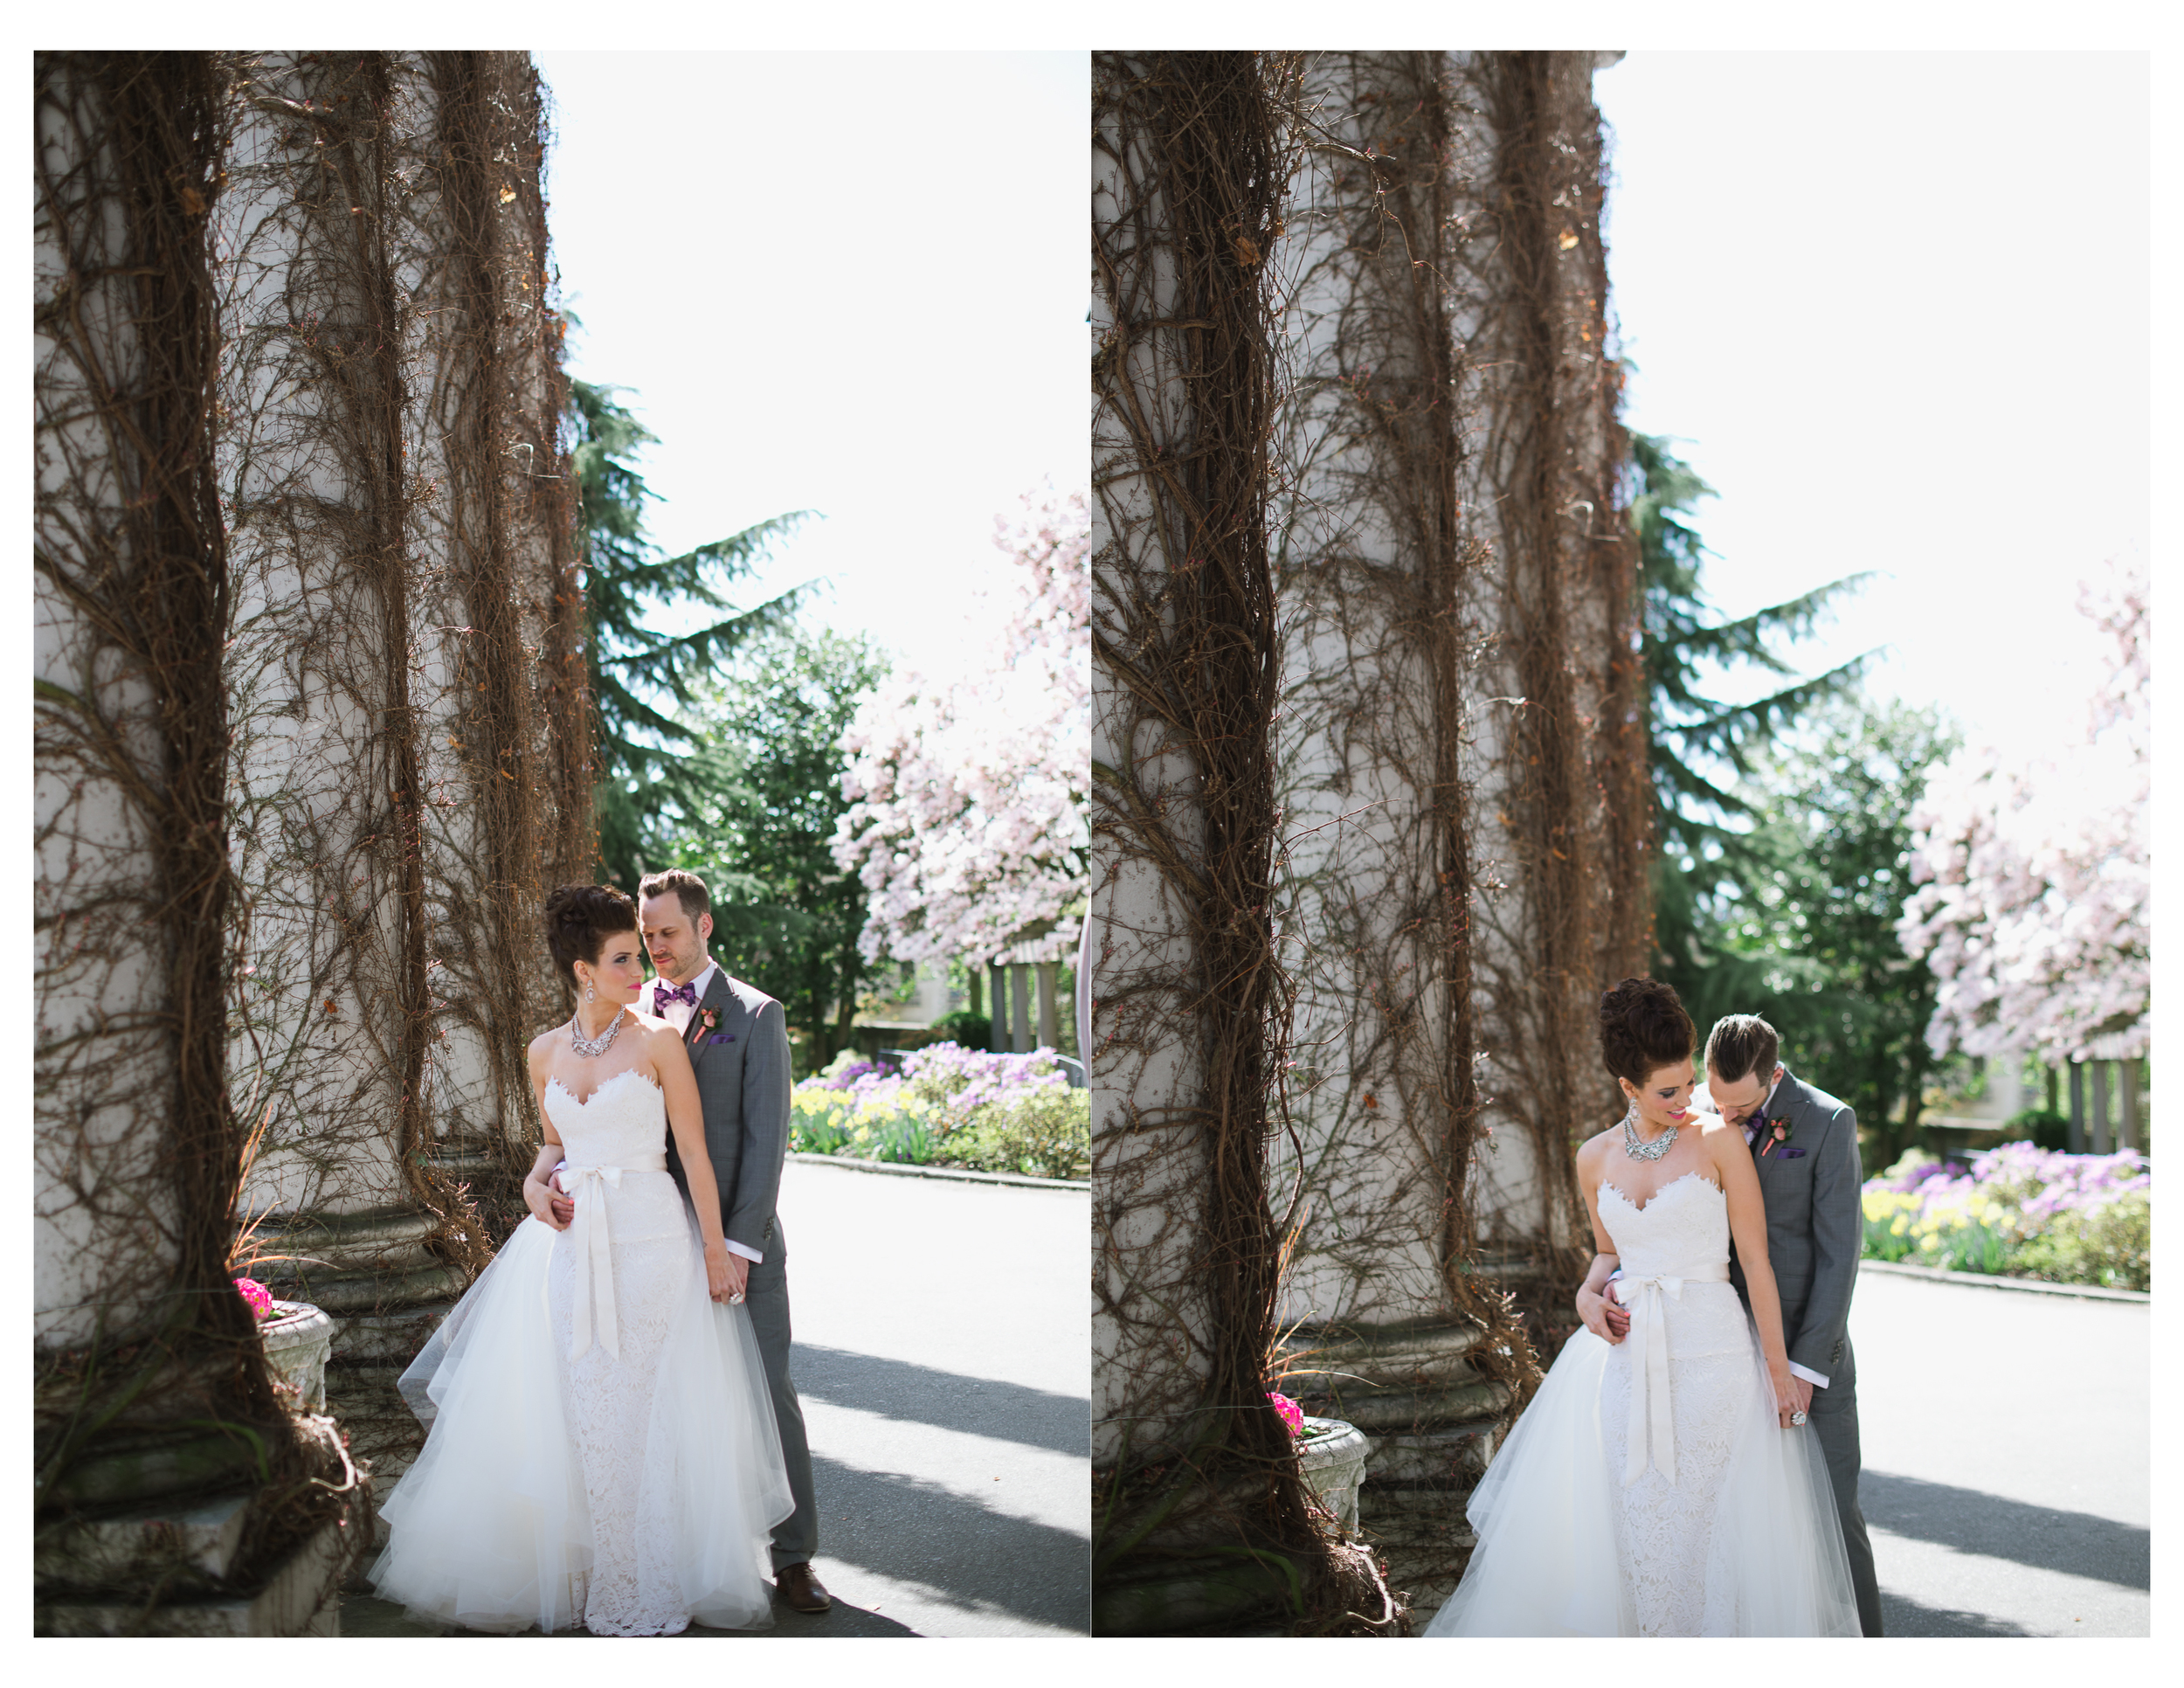 Katie Powell Photography_Vancouver_Wedding_Hycroft Manor-09.jpg